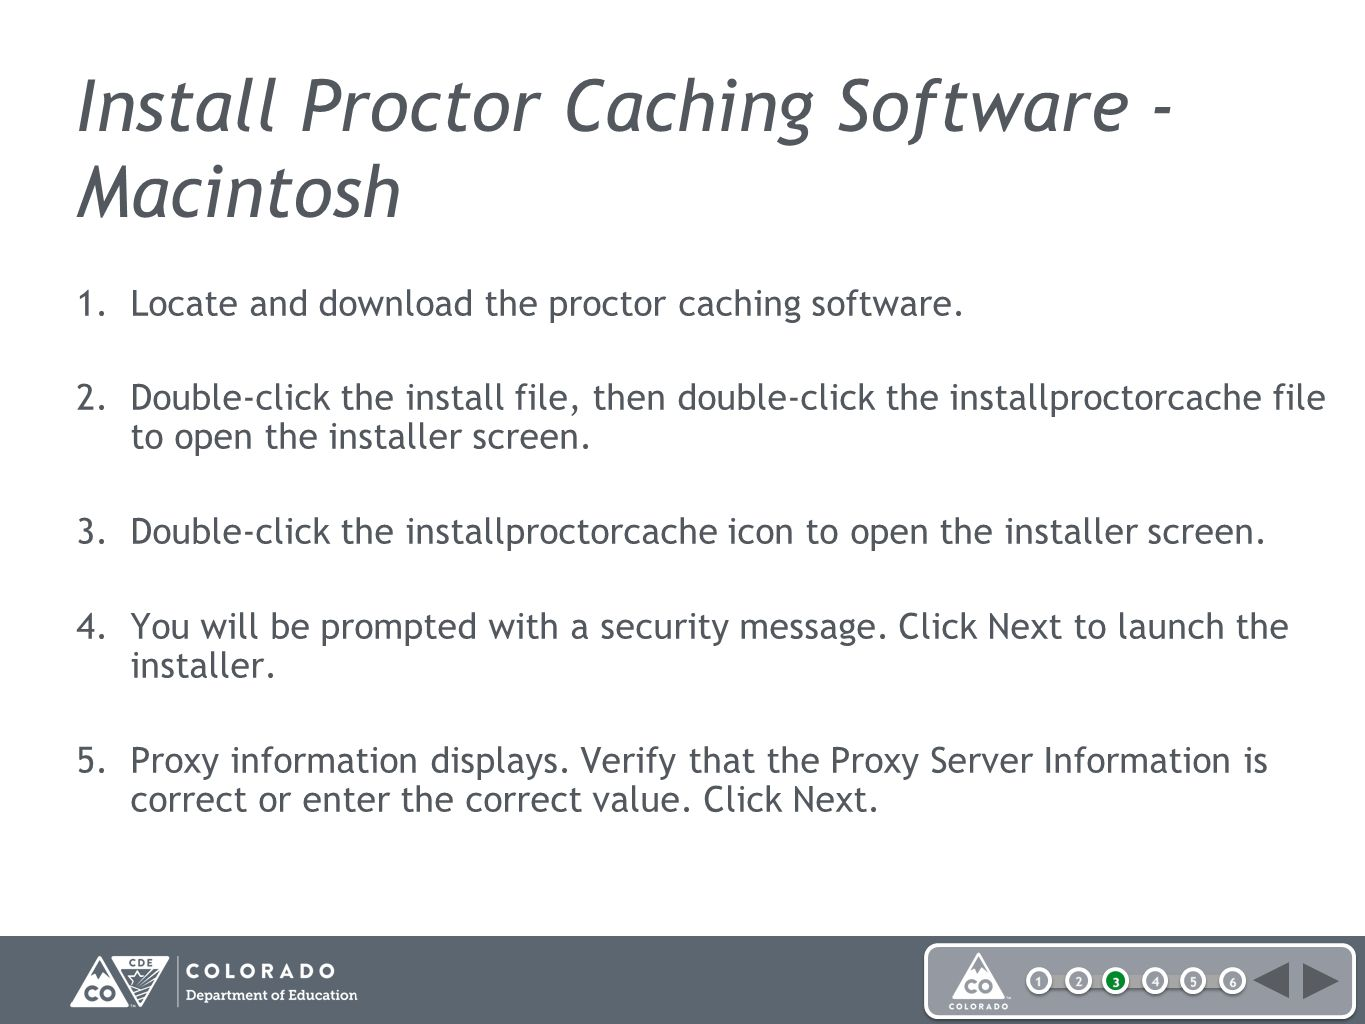 Install Proctor Caching Software - Macintosh 1.Locate and download the proctor caching software.